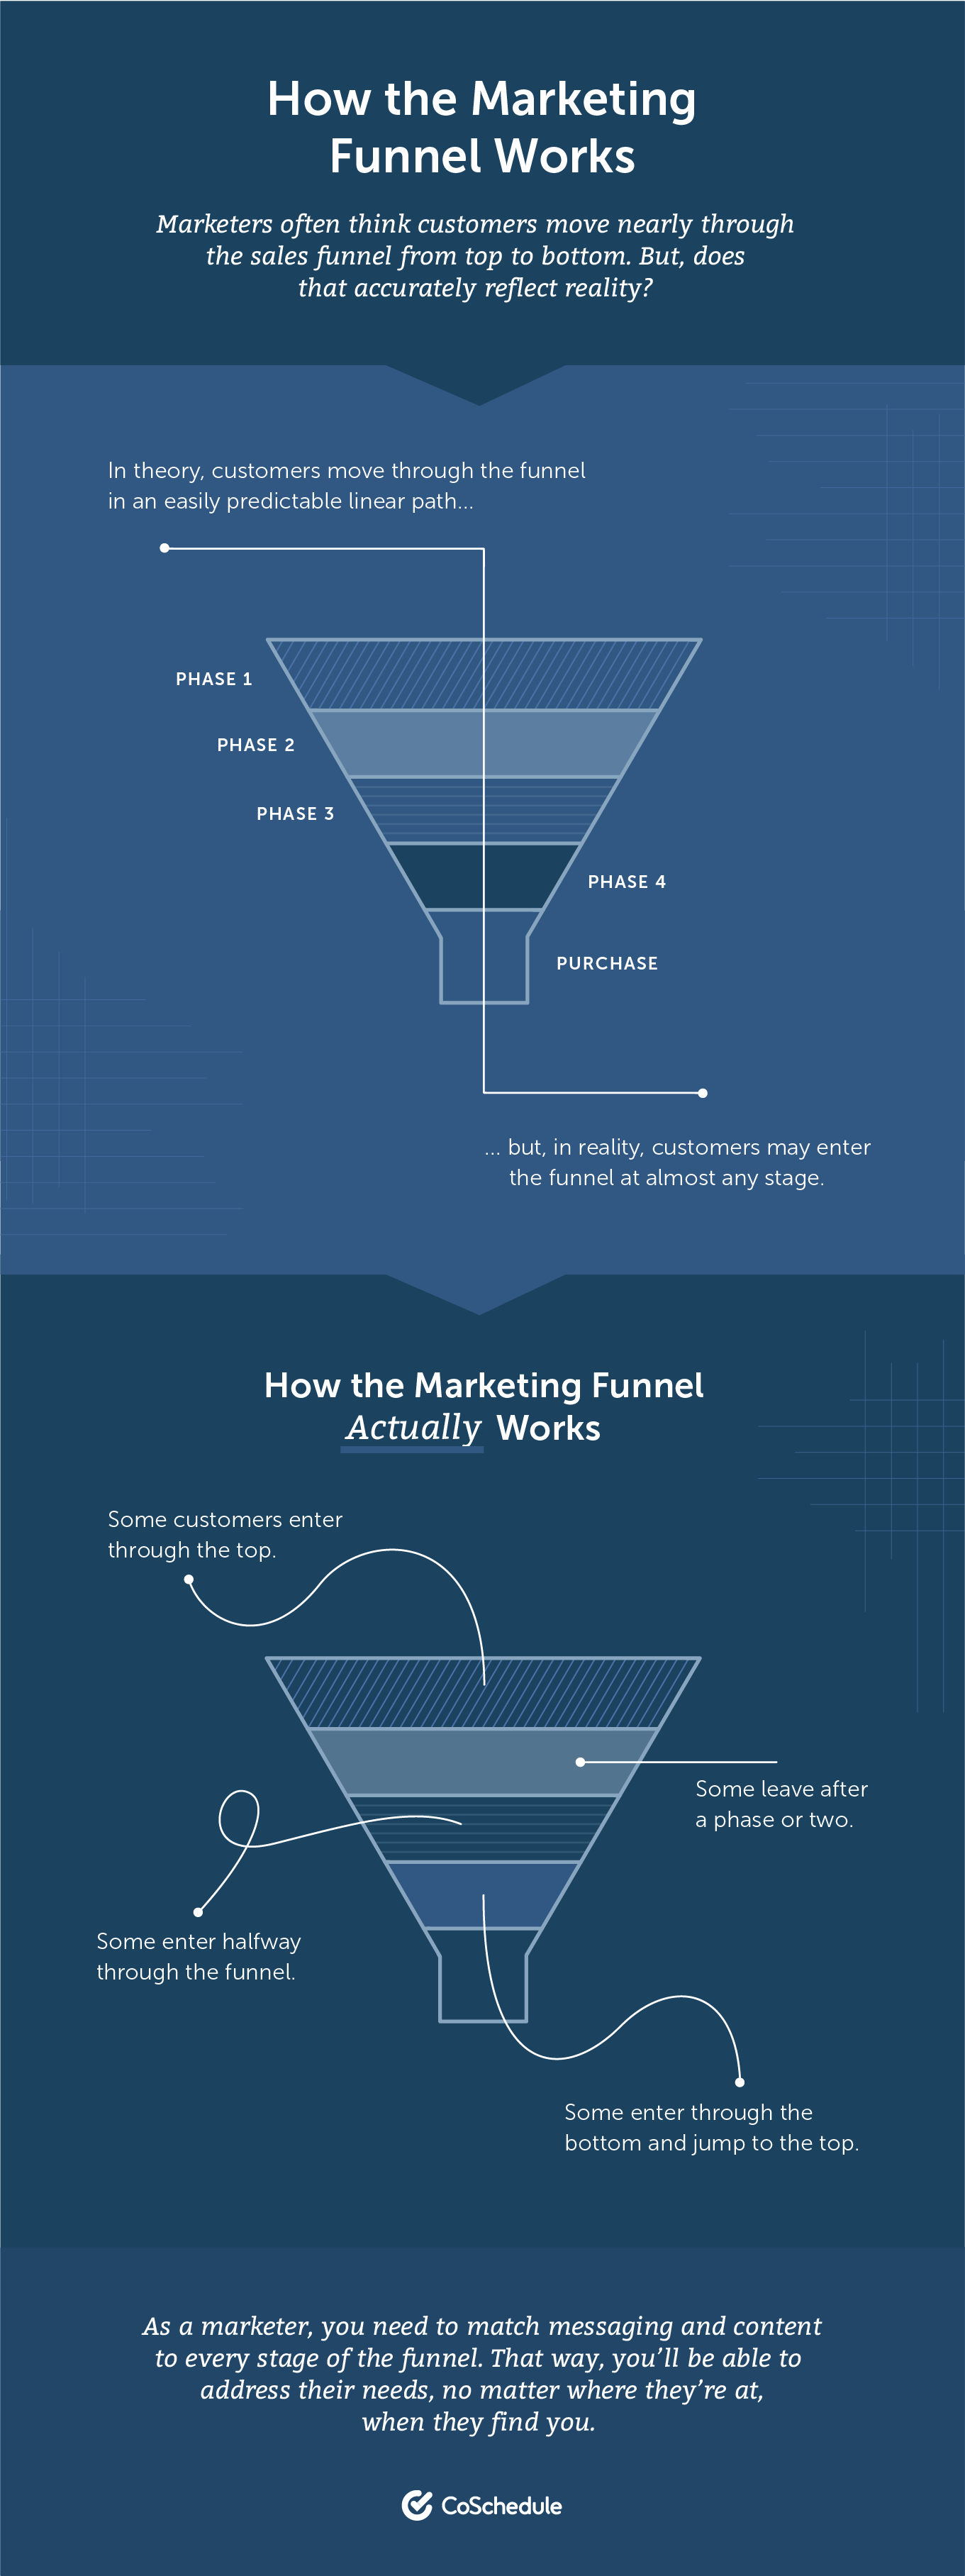 How the Content Marketing Funnel Works